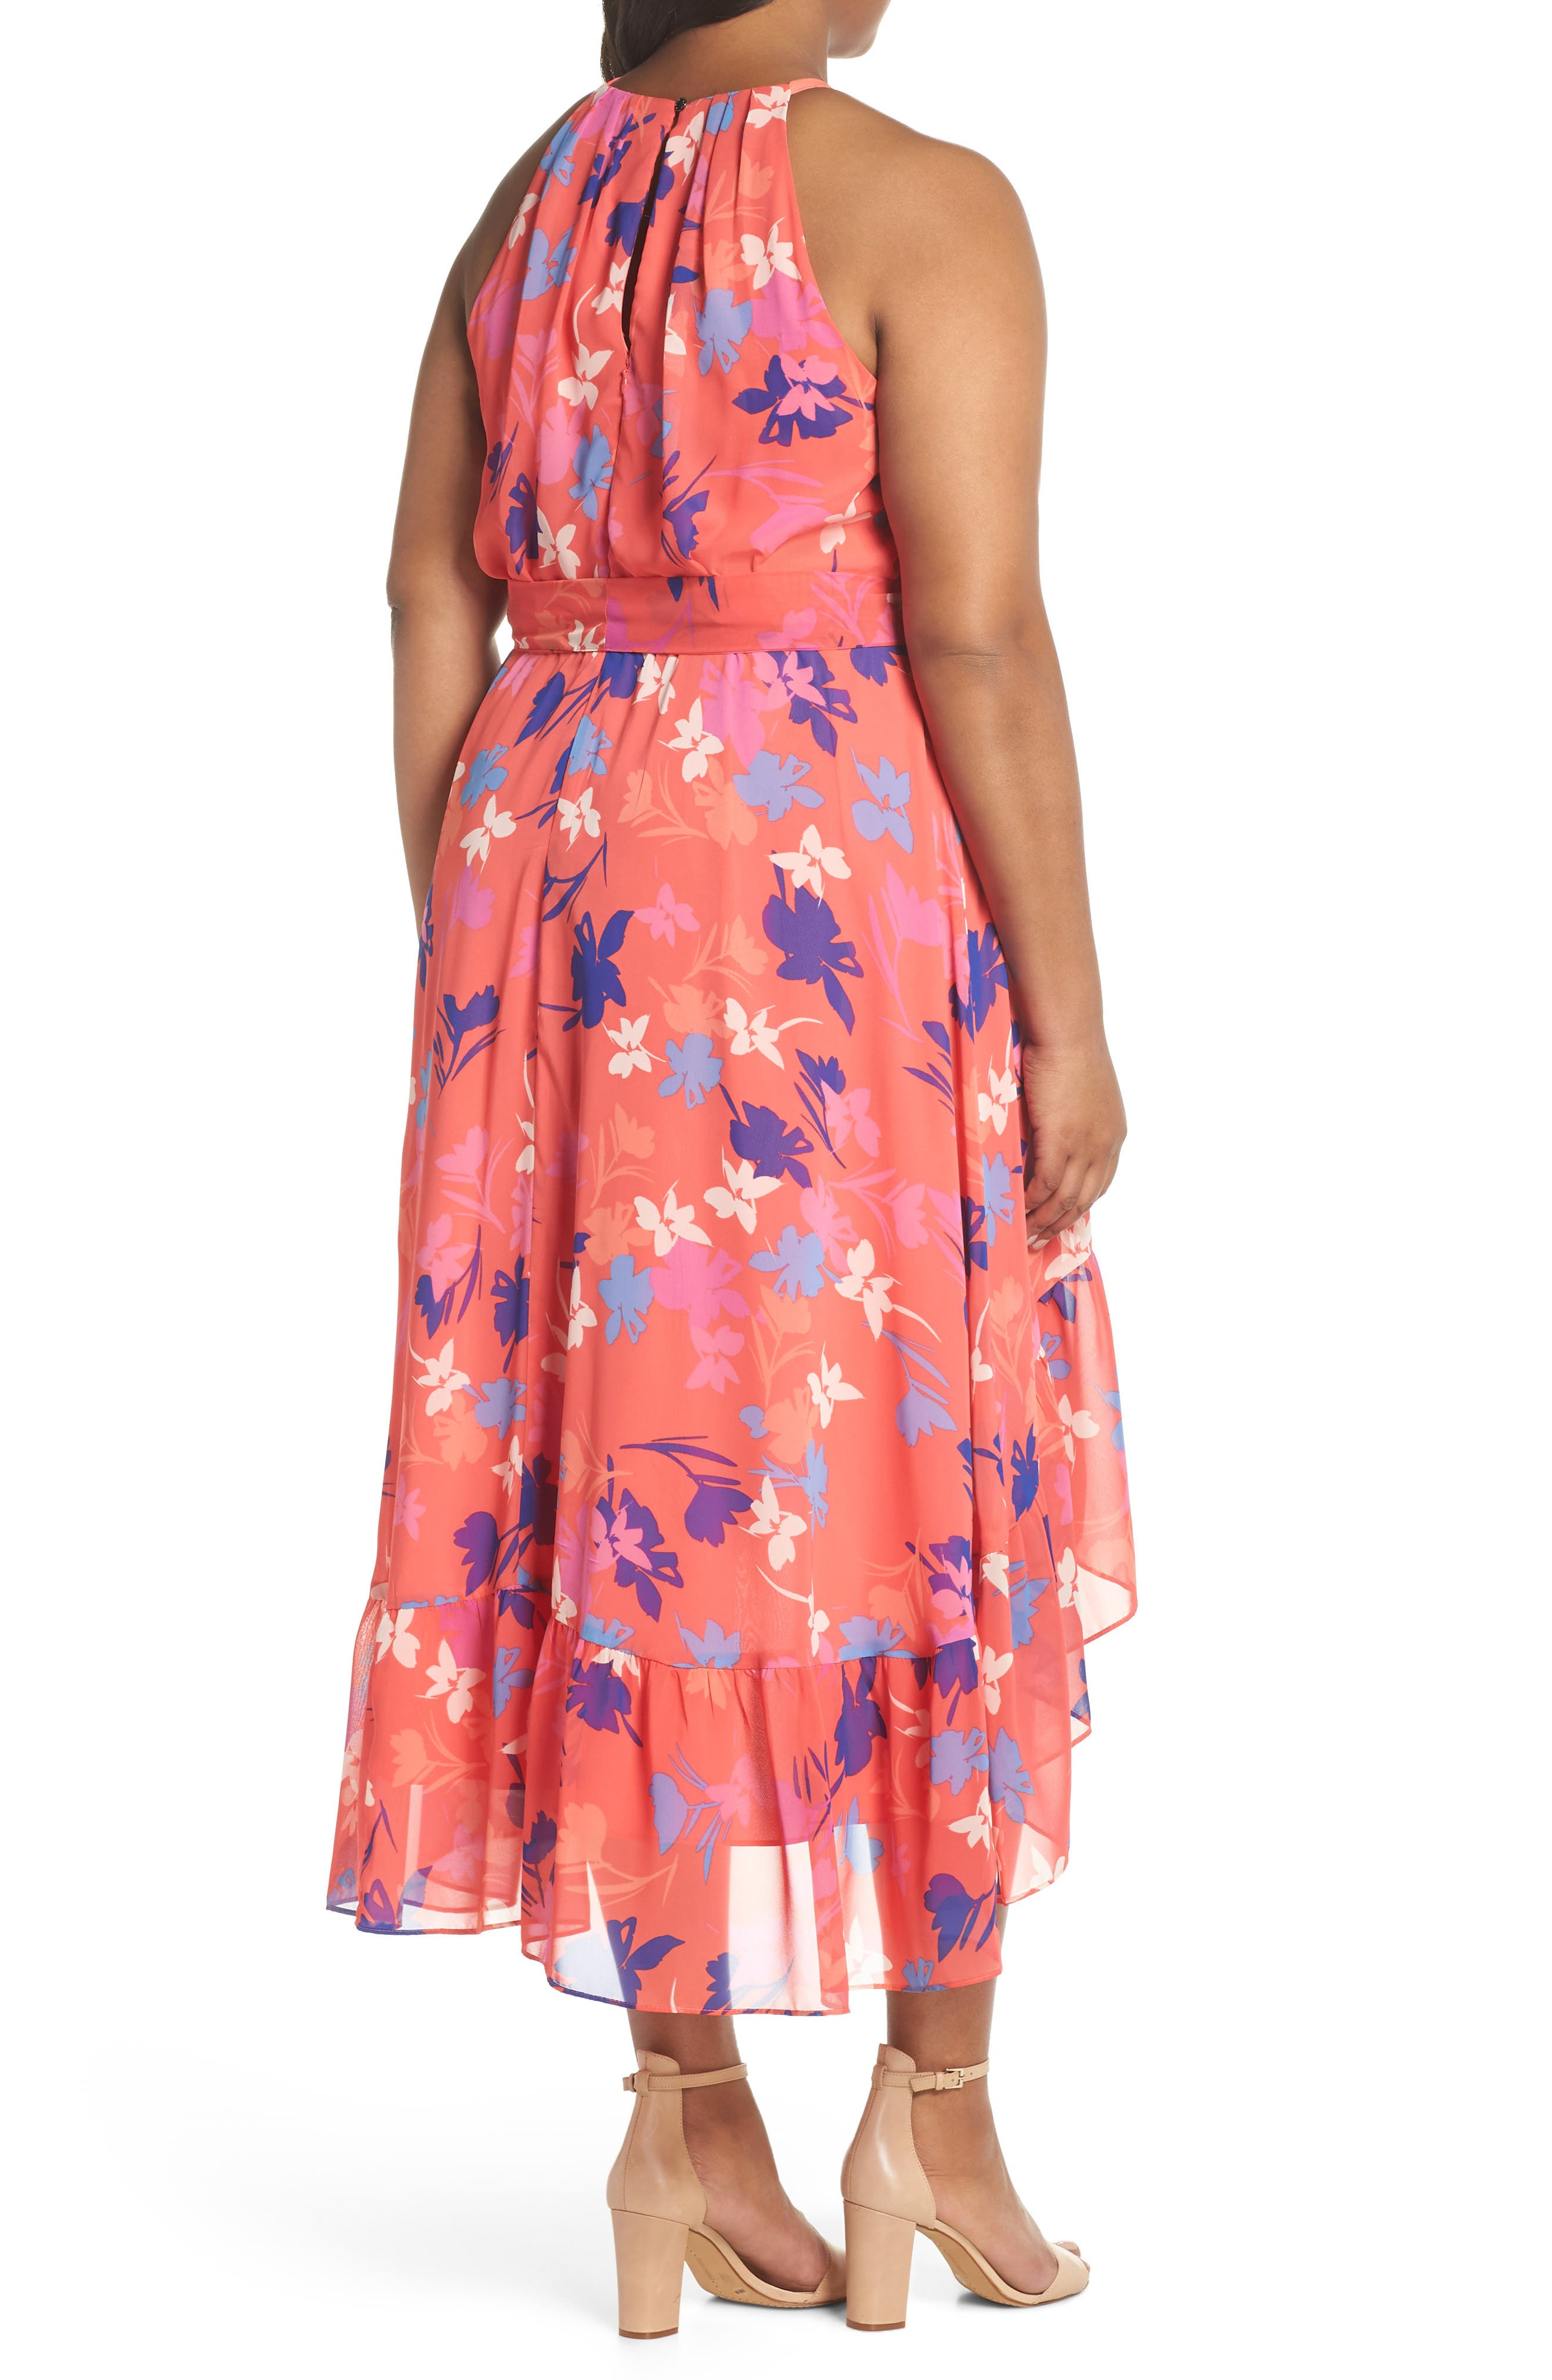 Floral High/Low Halter Dress,                             Alternate thumbnail 2, color,                             Coral/ Fiery Fuchsia/ Navy